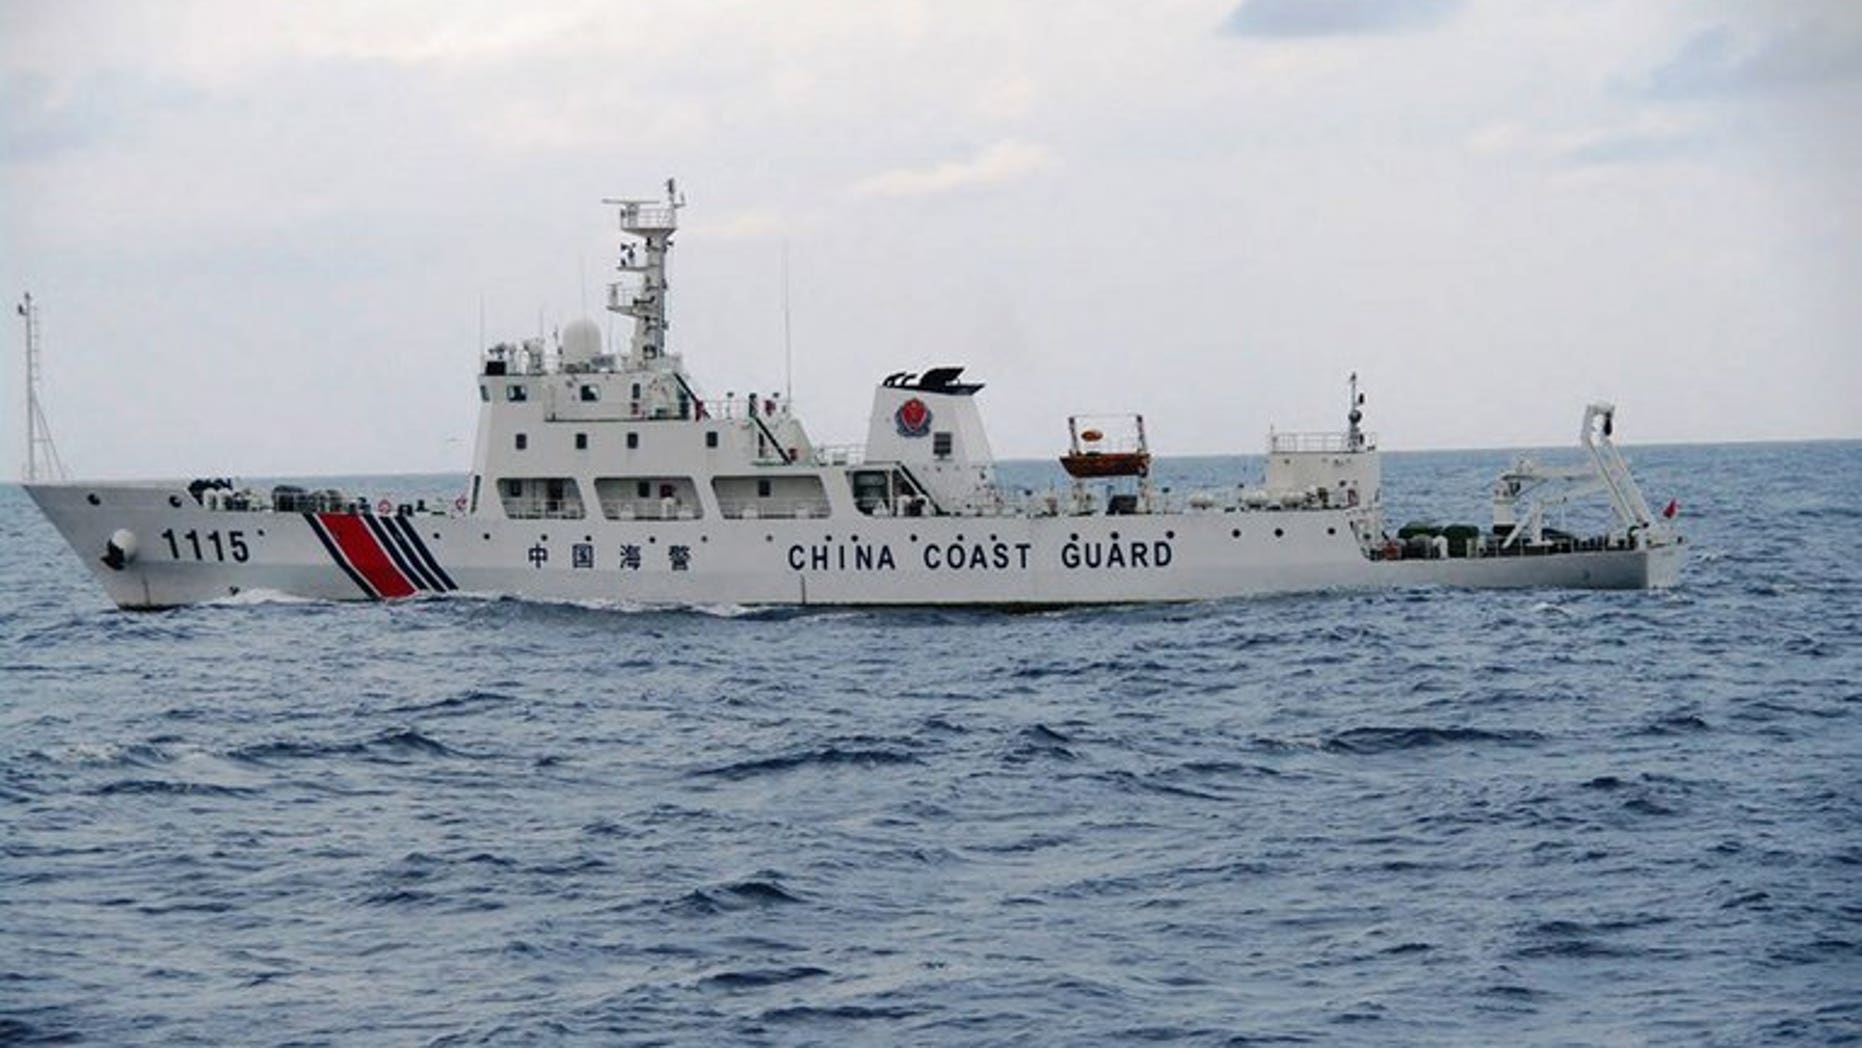 A Chinese coast guard ship near the disputed islets known as the Senkaku islands in Japan and Diaoyu islands in China, in a photo taken and released by the Japan Coast Guard on September 5, 2013.